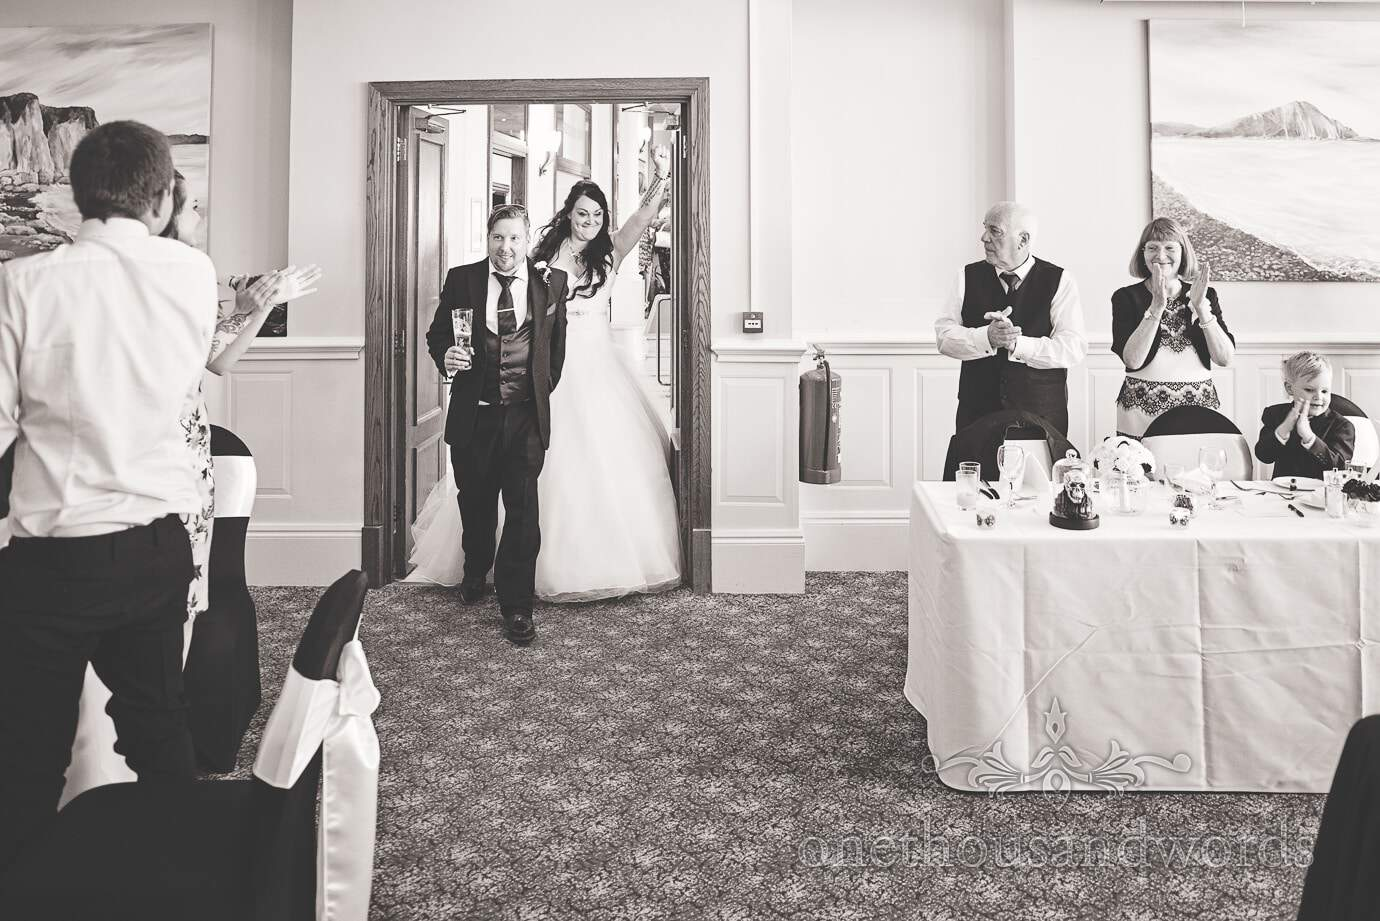 Bride and groom make entrance into wedding breakfast in black and white wedding photograph